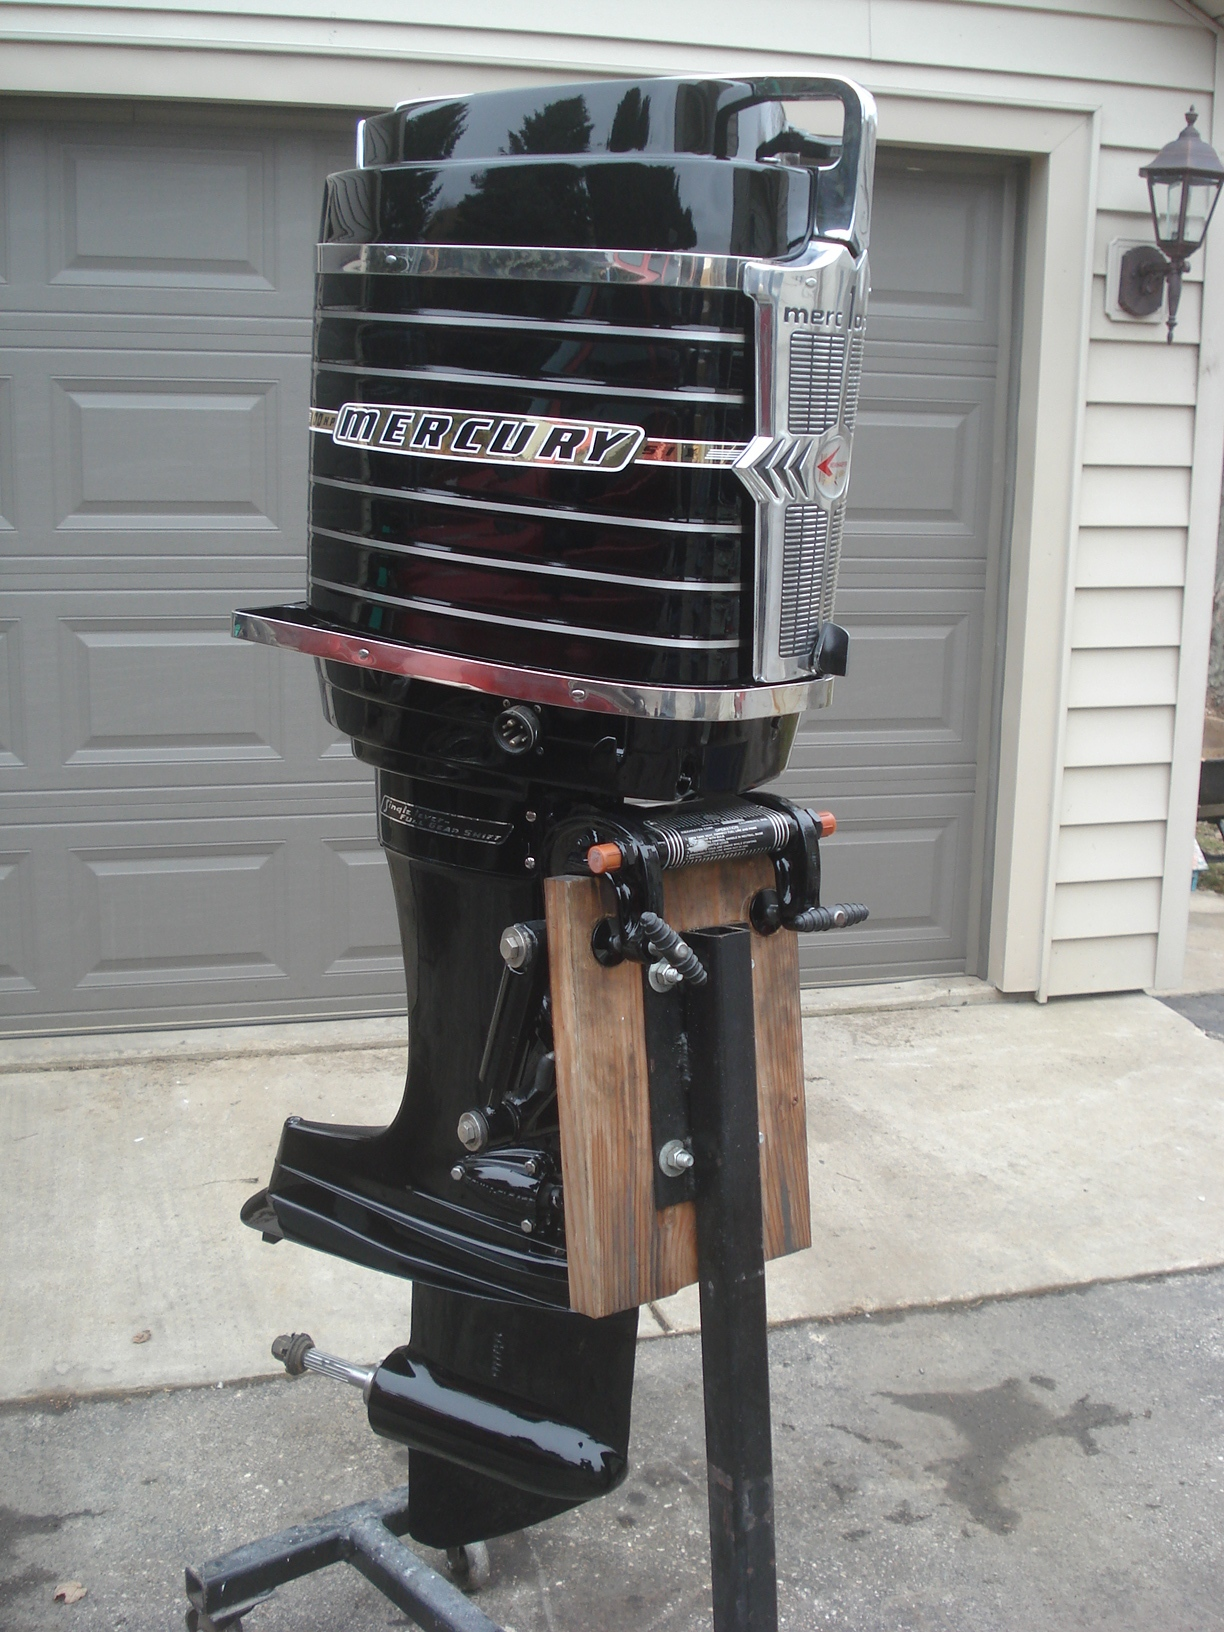 Fish camp mercury outboards for sale autos post for Cabela s outboard motors for sale